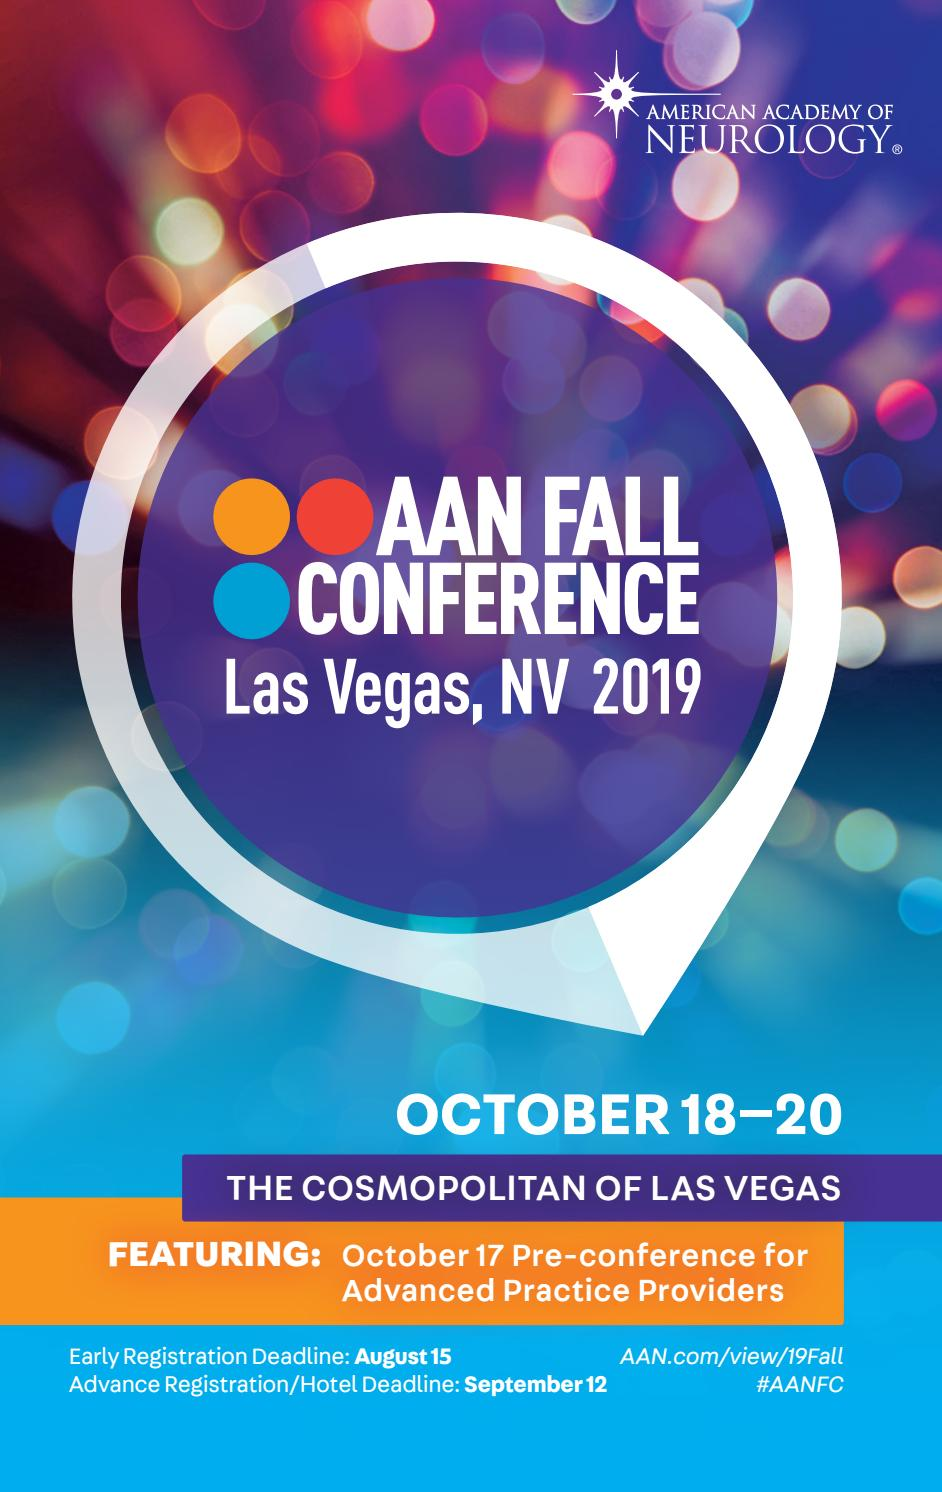 2019 AAN Fall Conference Program for Advanced Practice